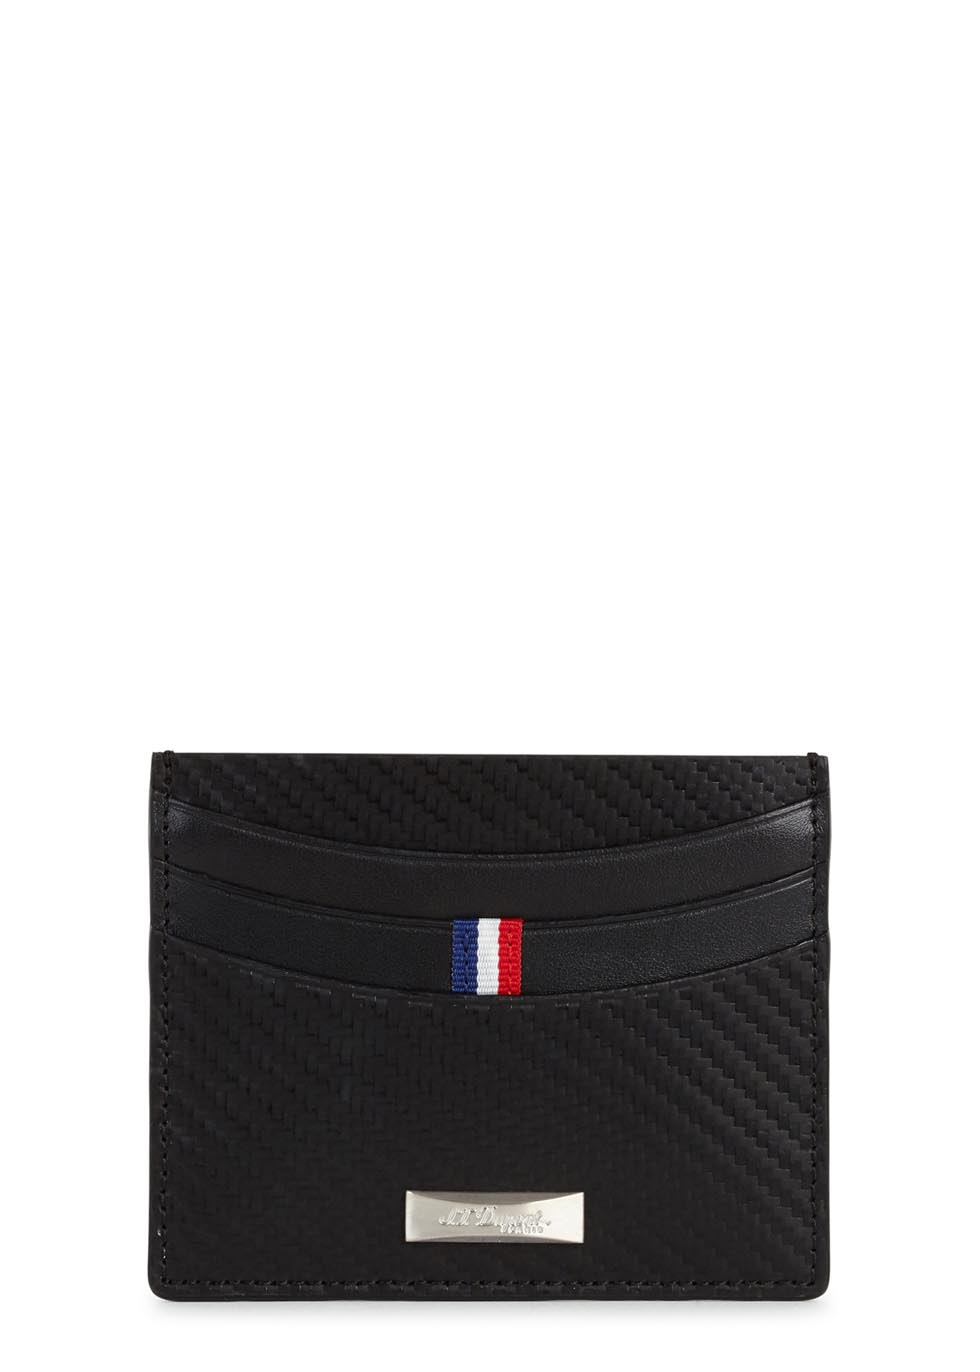 Black Défi carbon leather card holder - S.T. Dupont